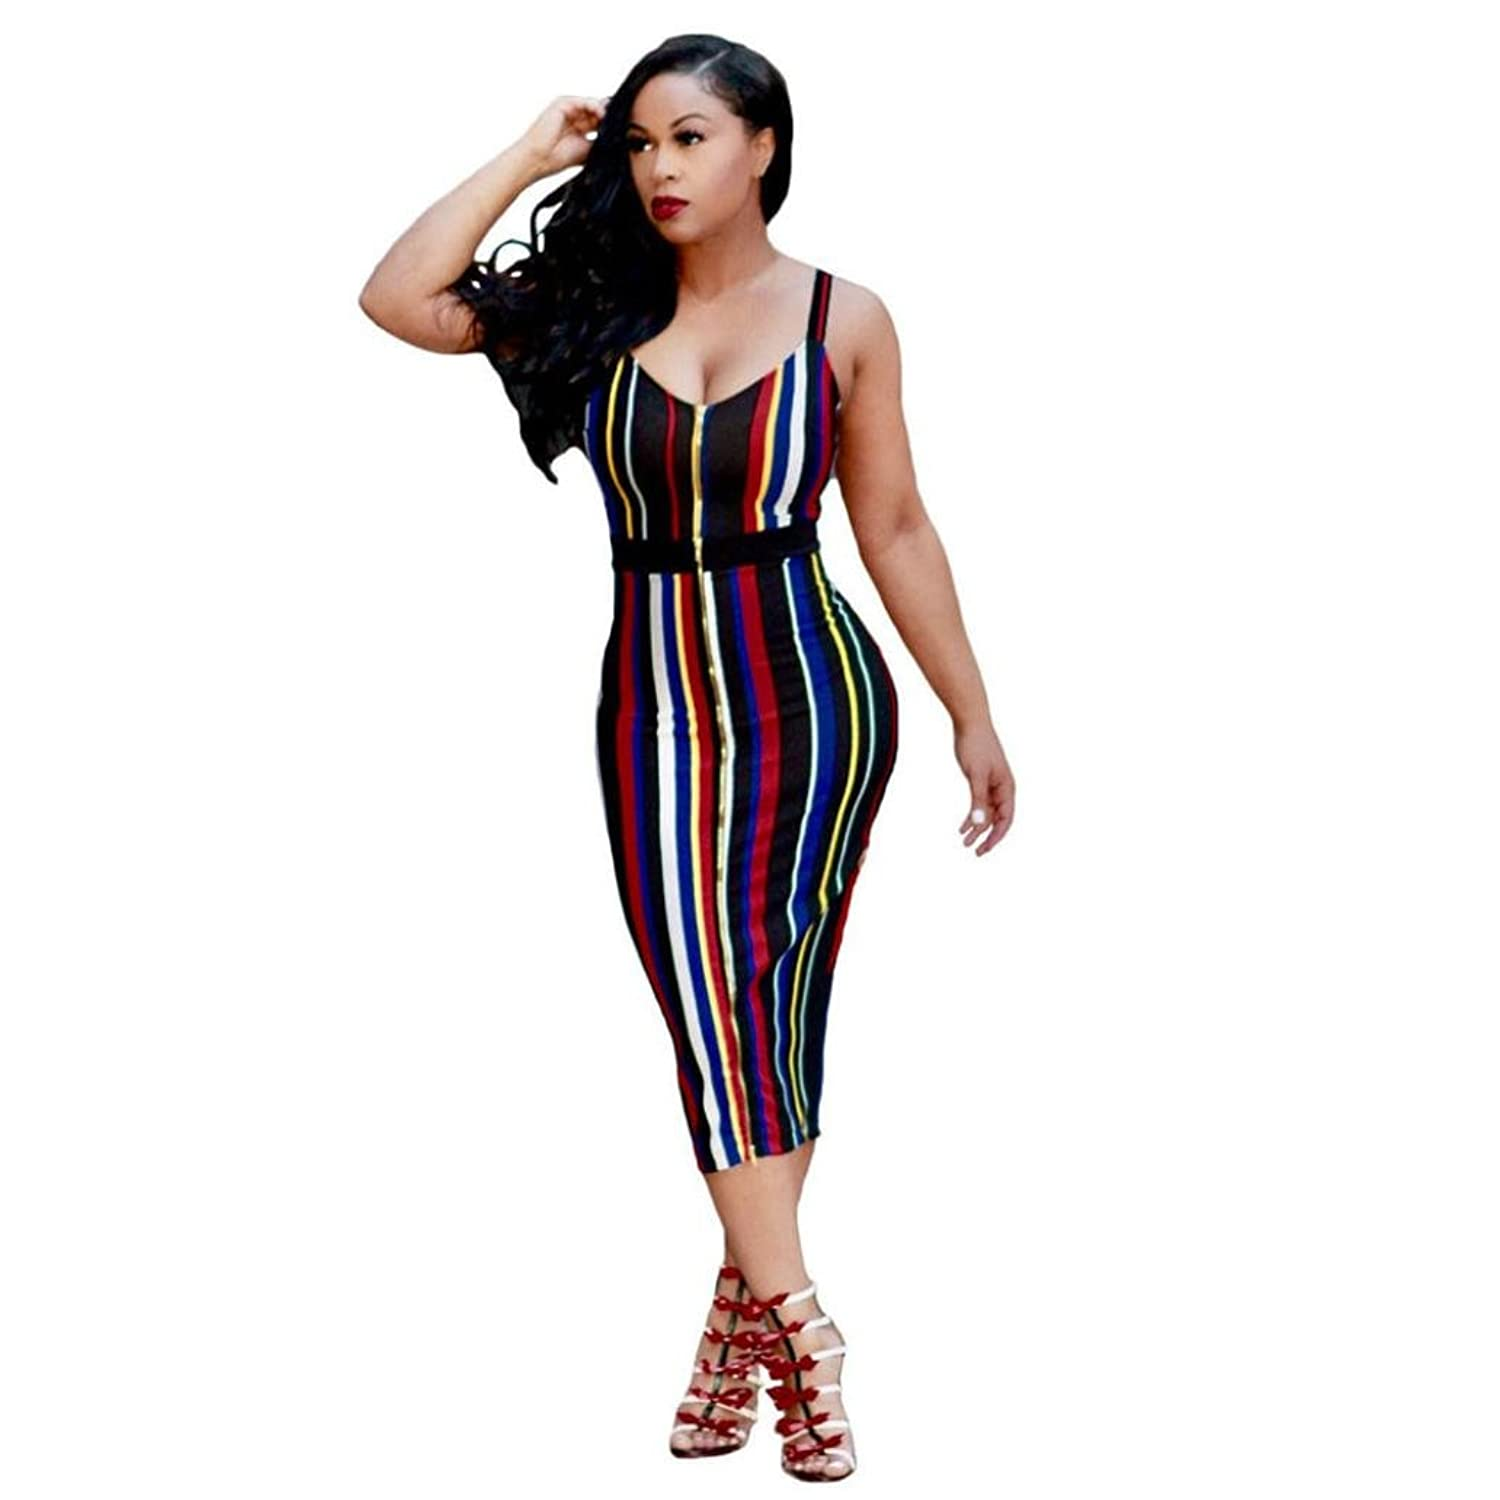 DaySeventh Sexy Women\'s Dresses Bandage Bodycon Party Cocktail Club ...